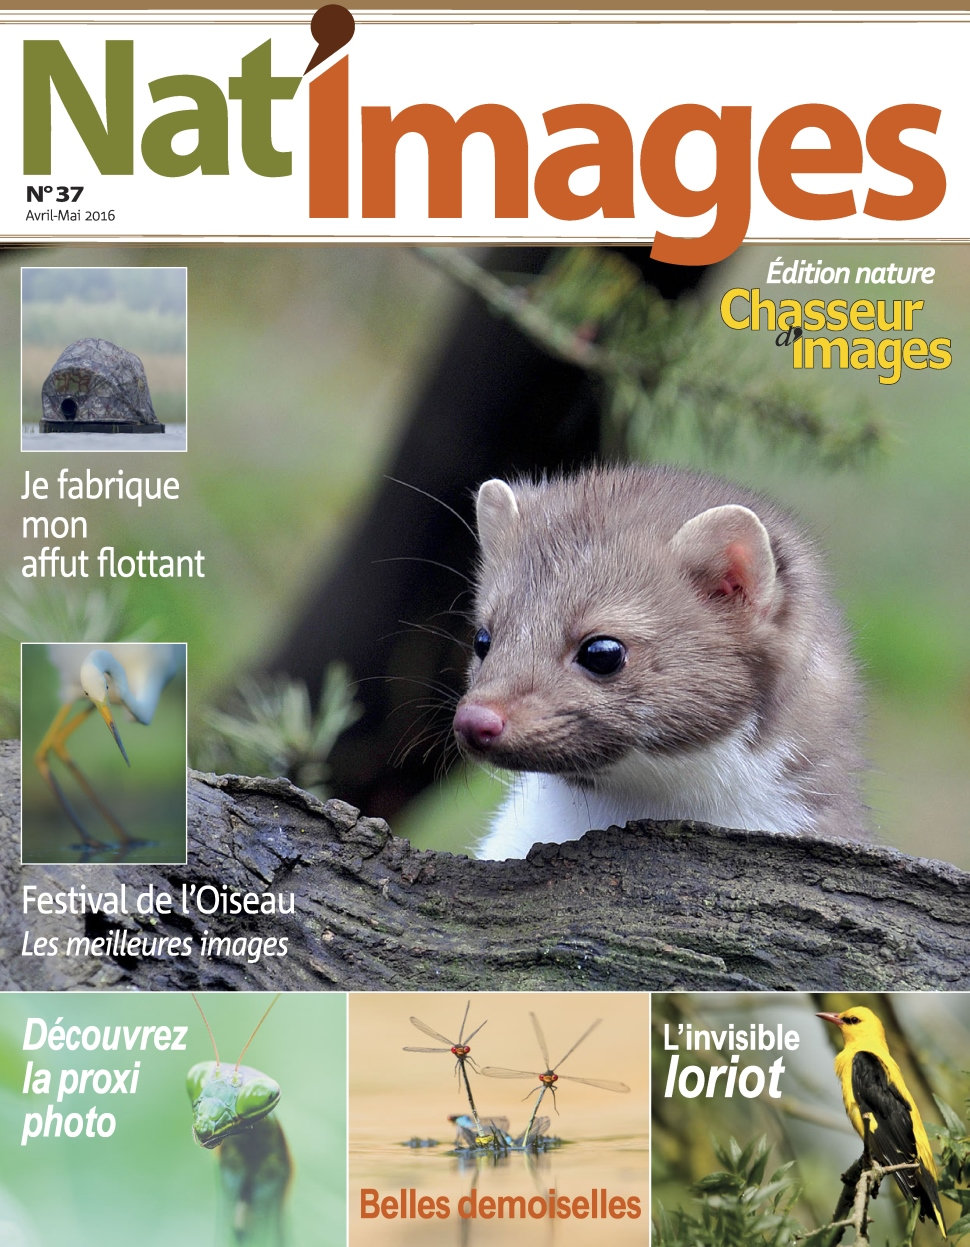 Nat'Images N°37 - Avril/Mai 2016